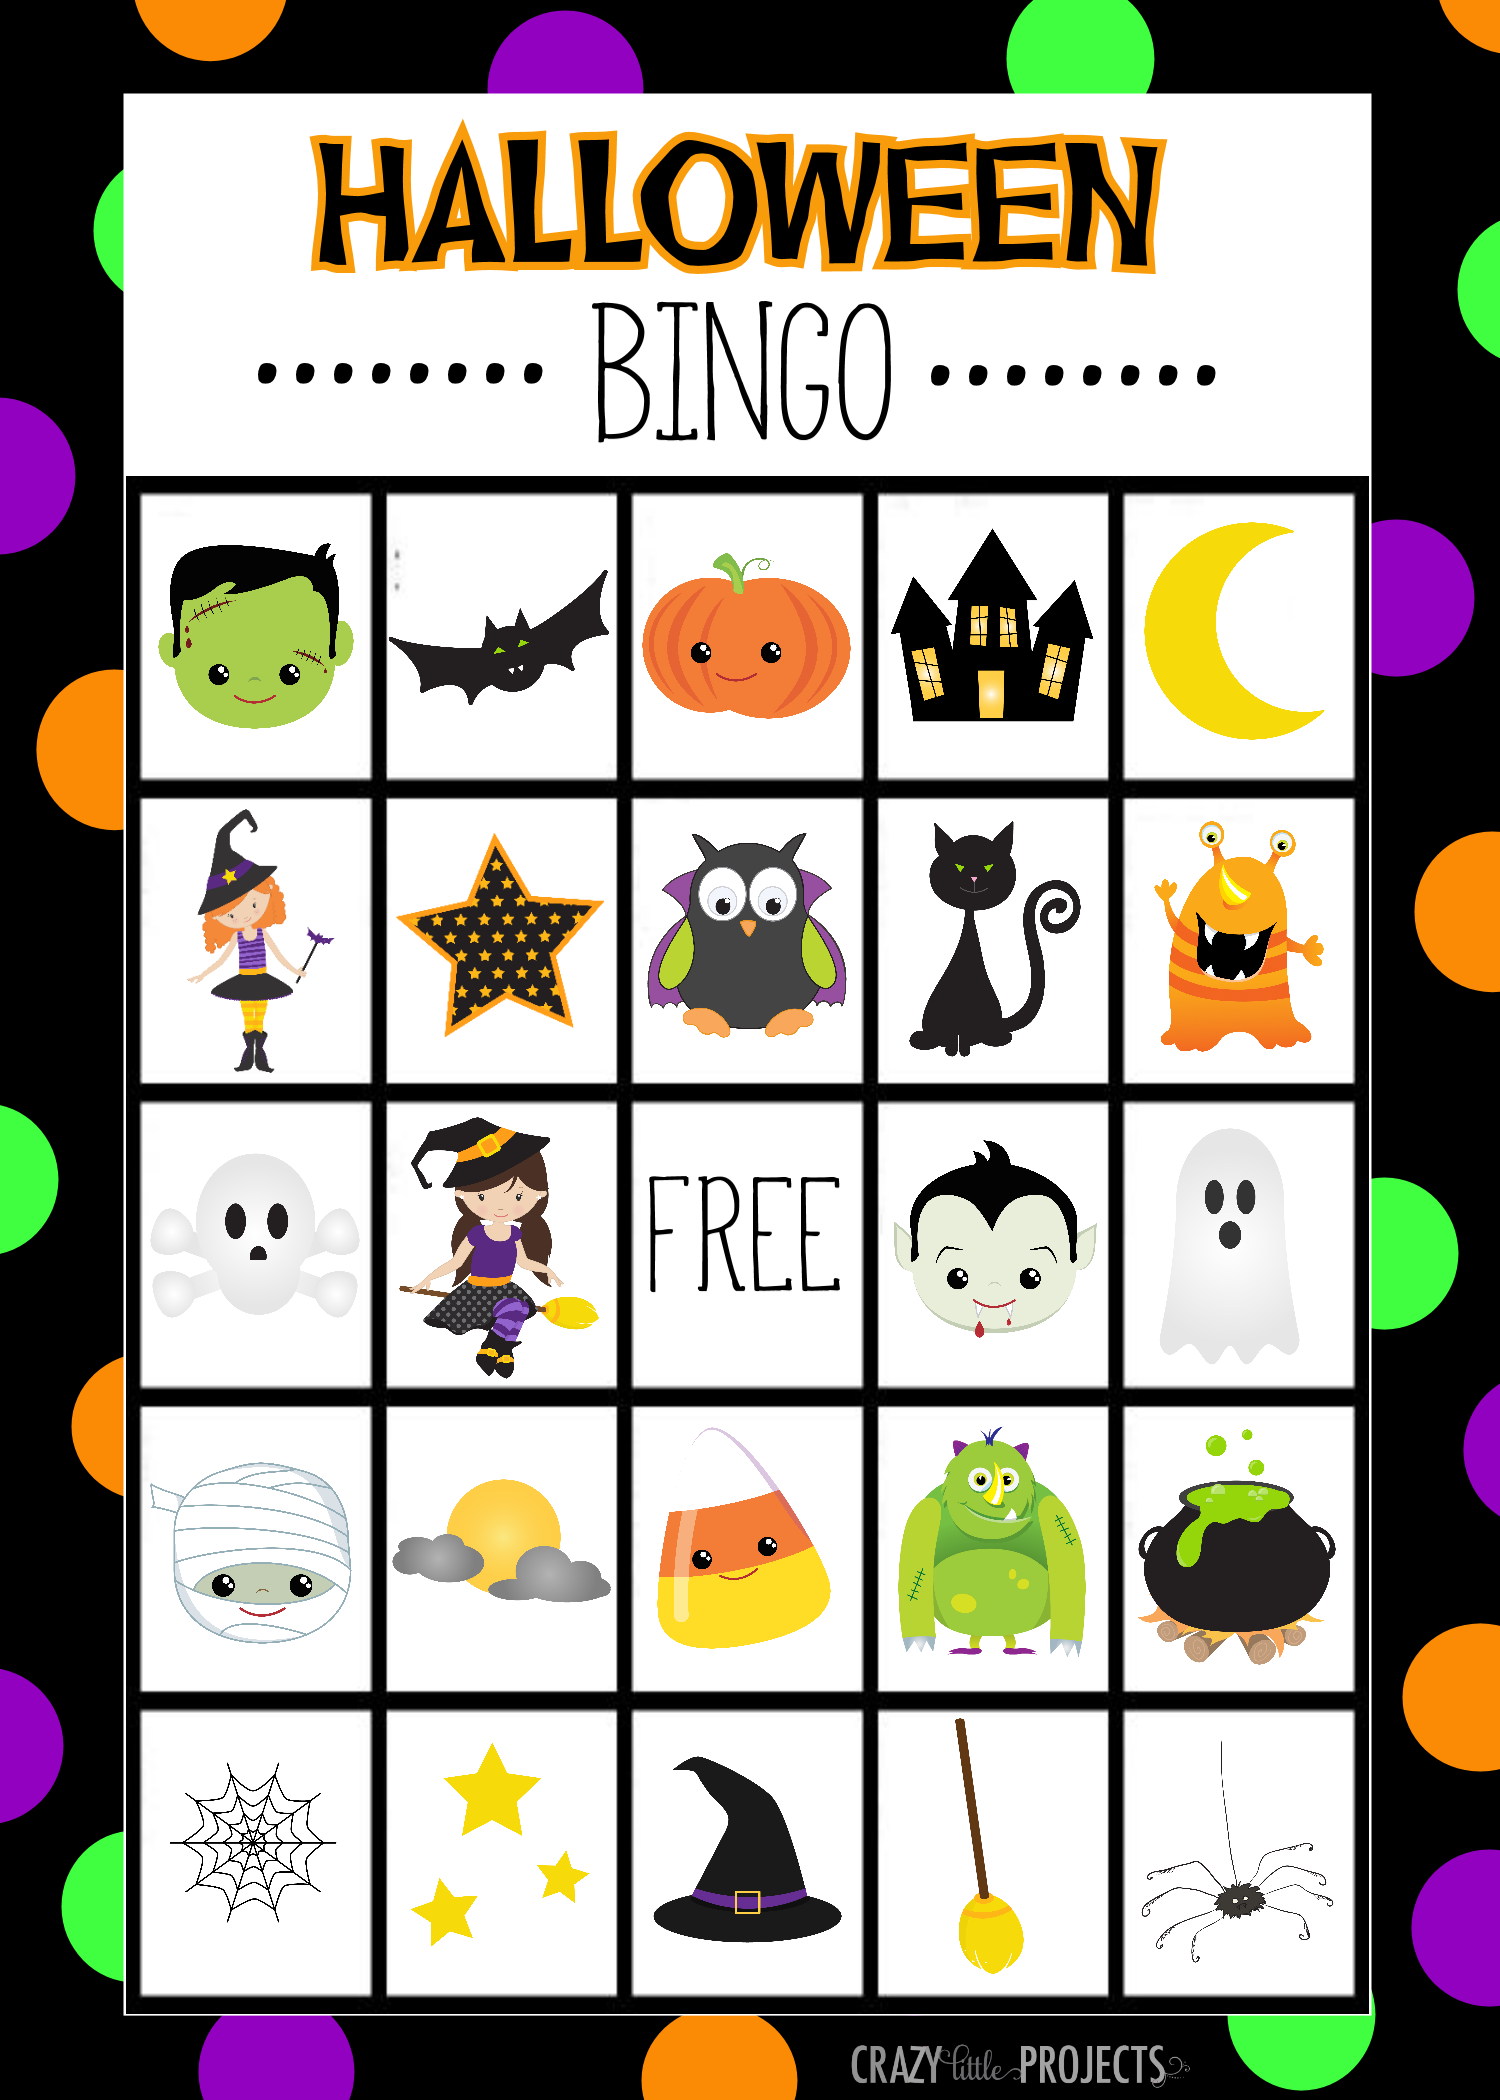 photo regarding Printable Halloween Bingo Cards identified as Free of charge Printable Halloween Bingo Playing cards by means of Mad Small